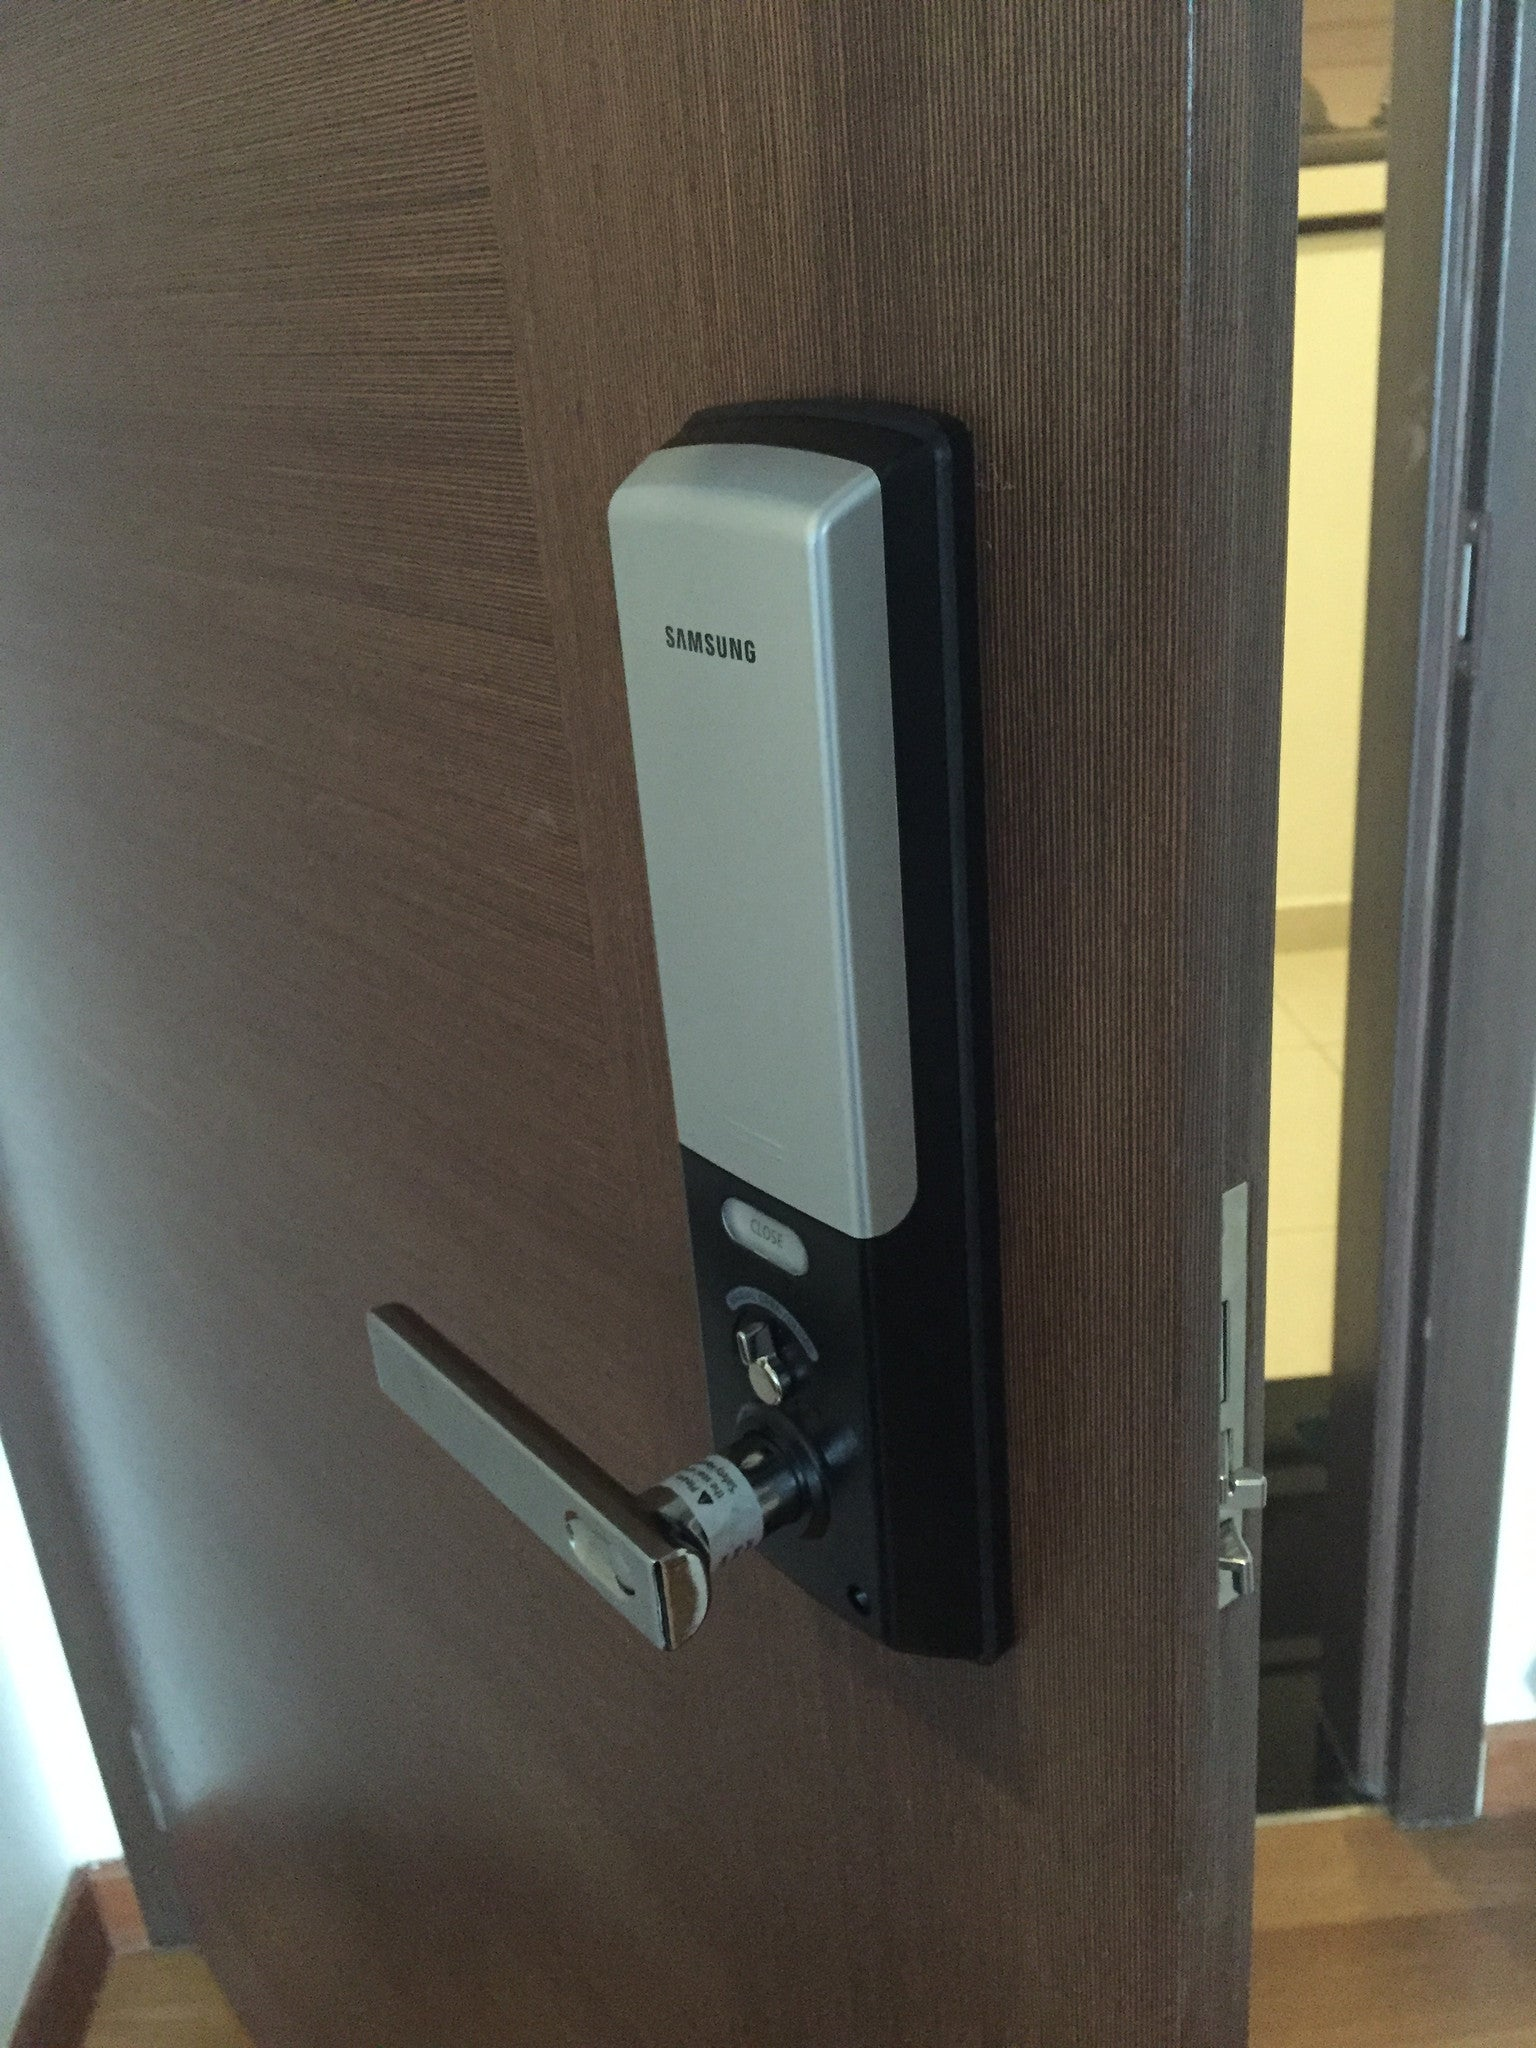 Samsung Digital Door Lock Shs H505 An Digital Lock Pte Ltd